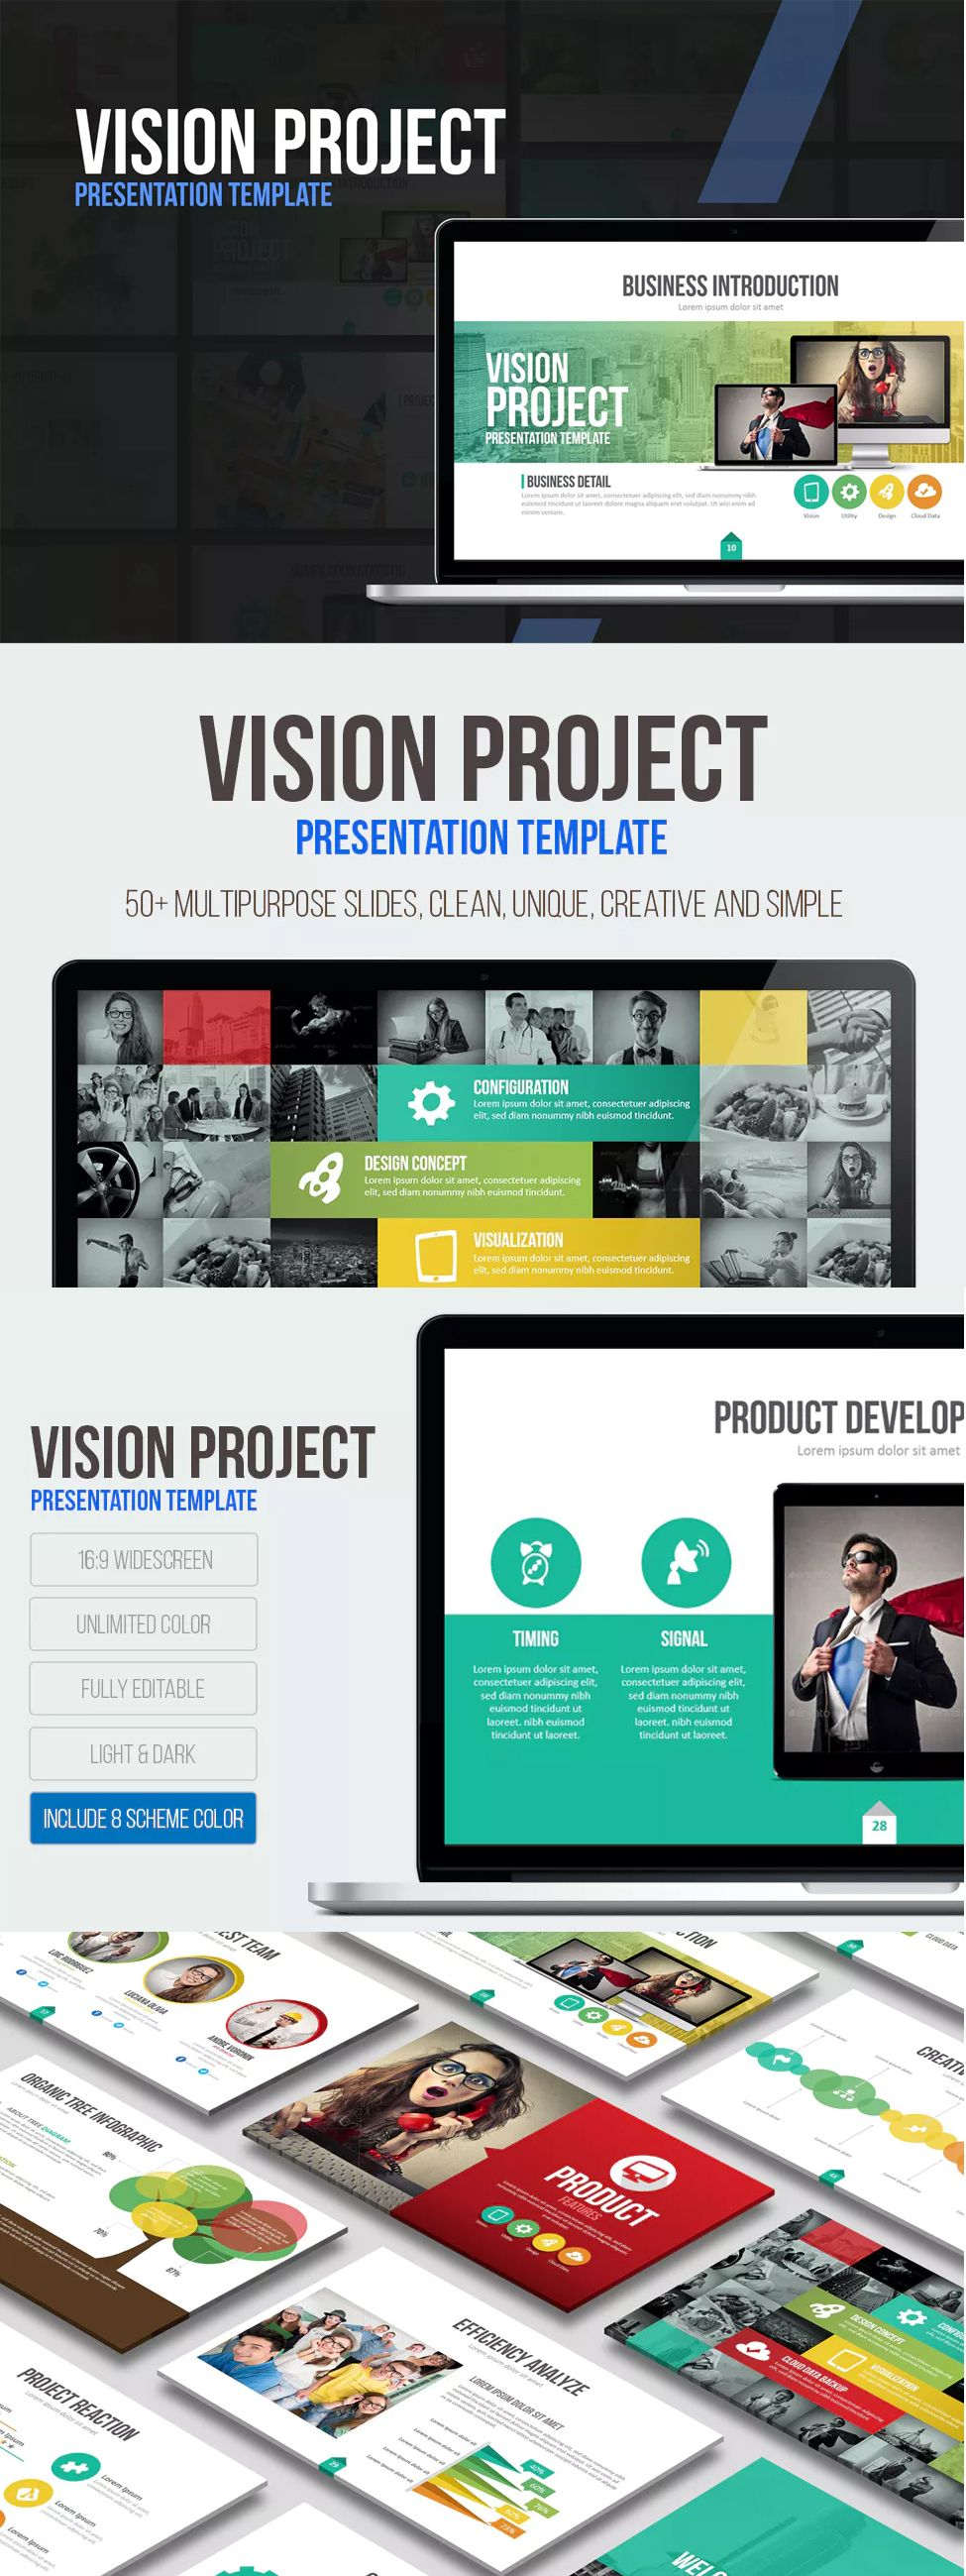 Vision Project Presentation Template  Powerpoint Presentation